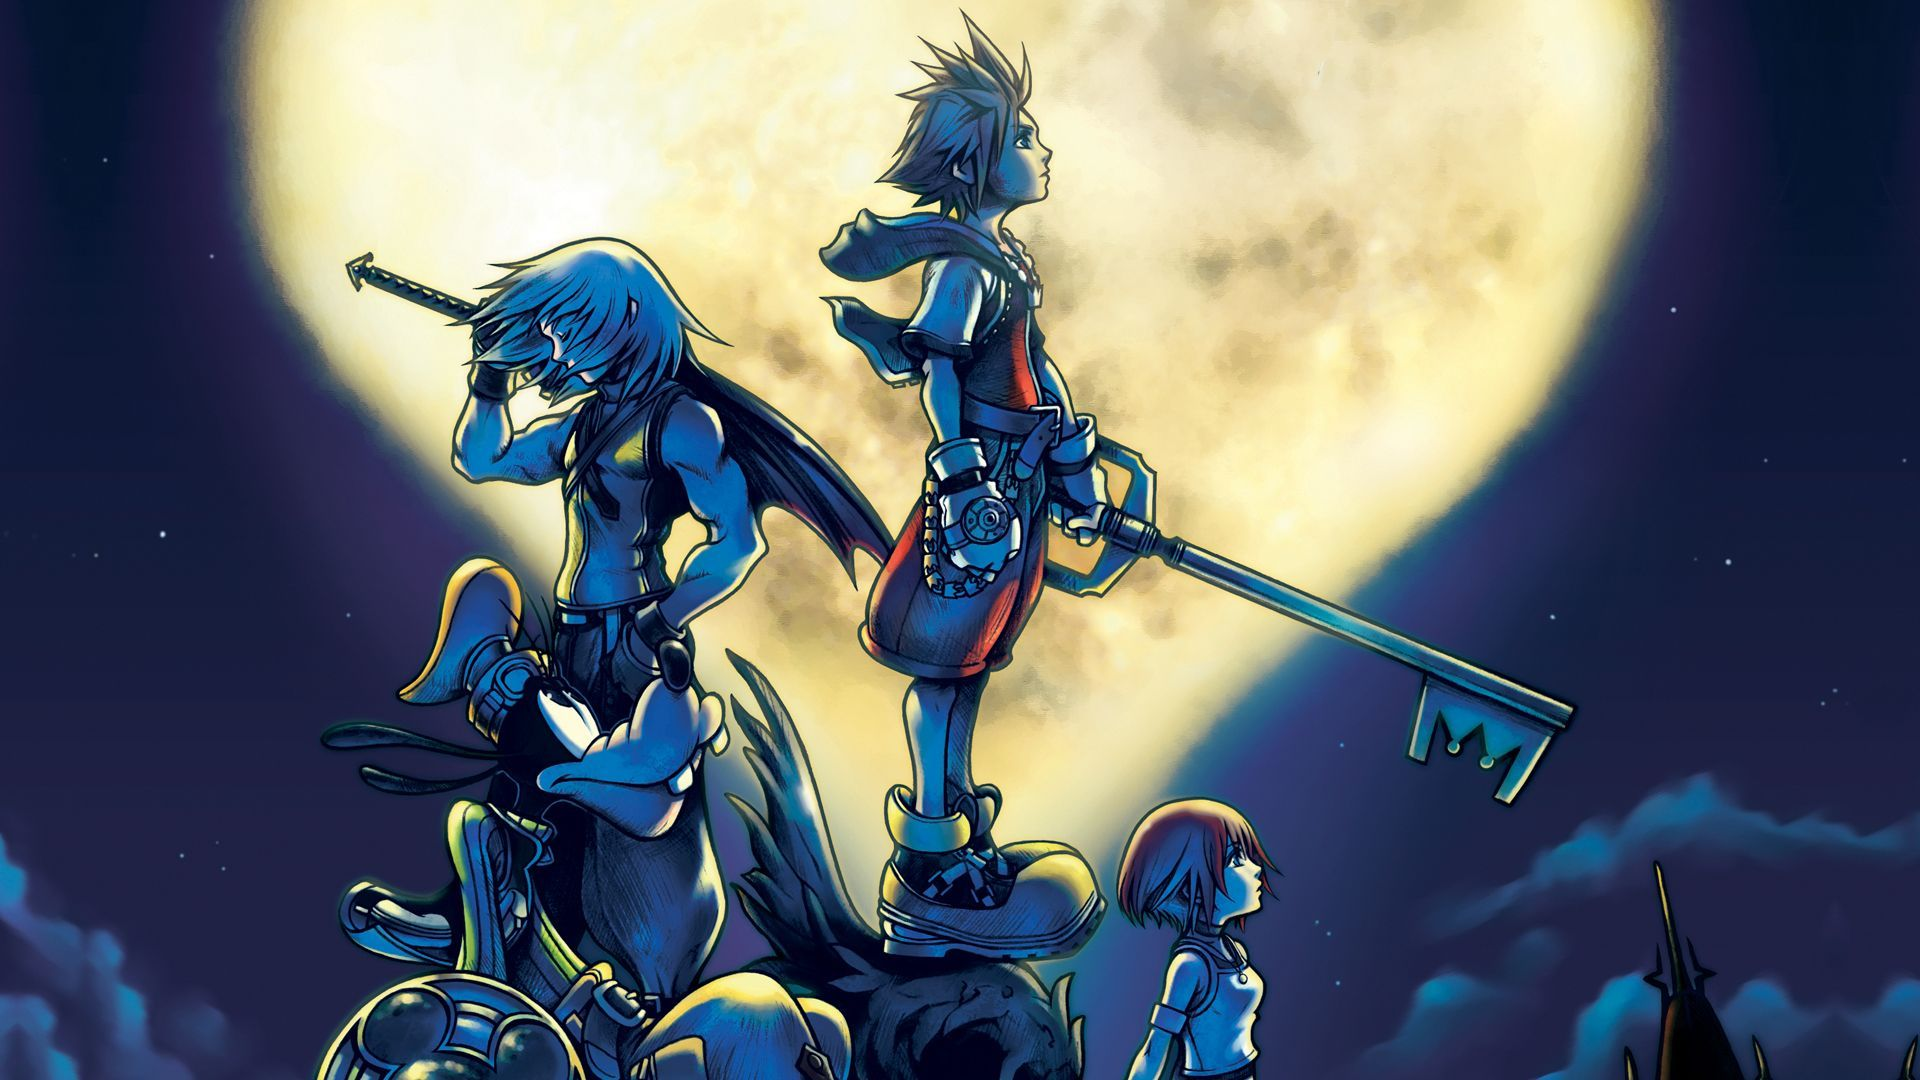 Kingdom Hearts, sequels